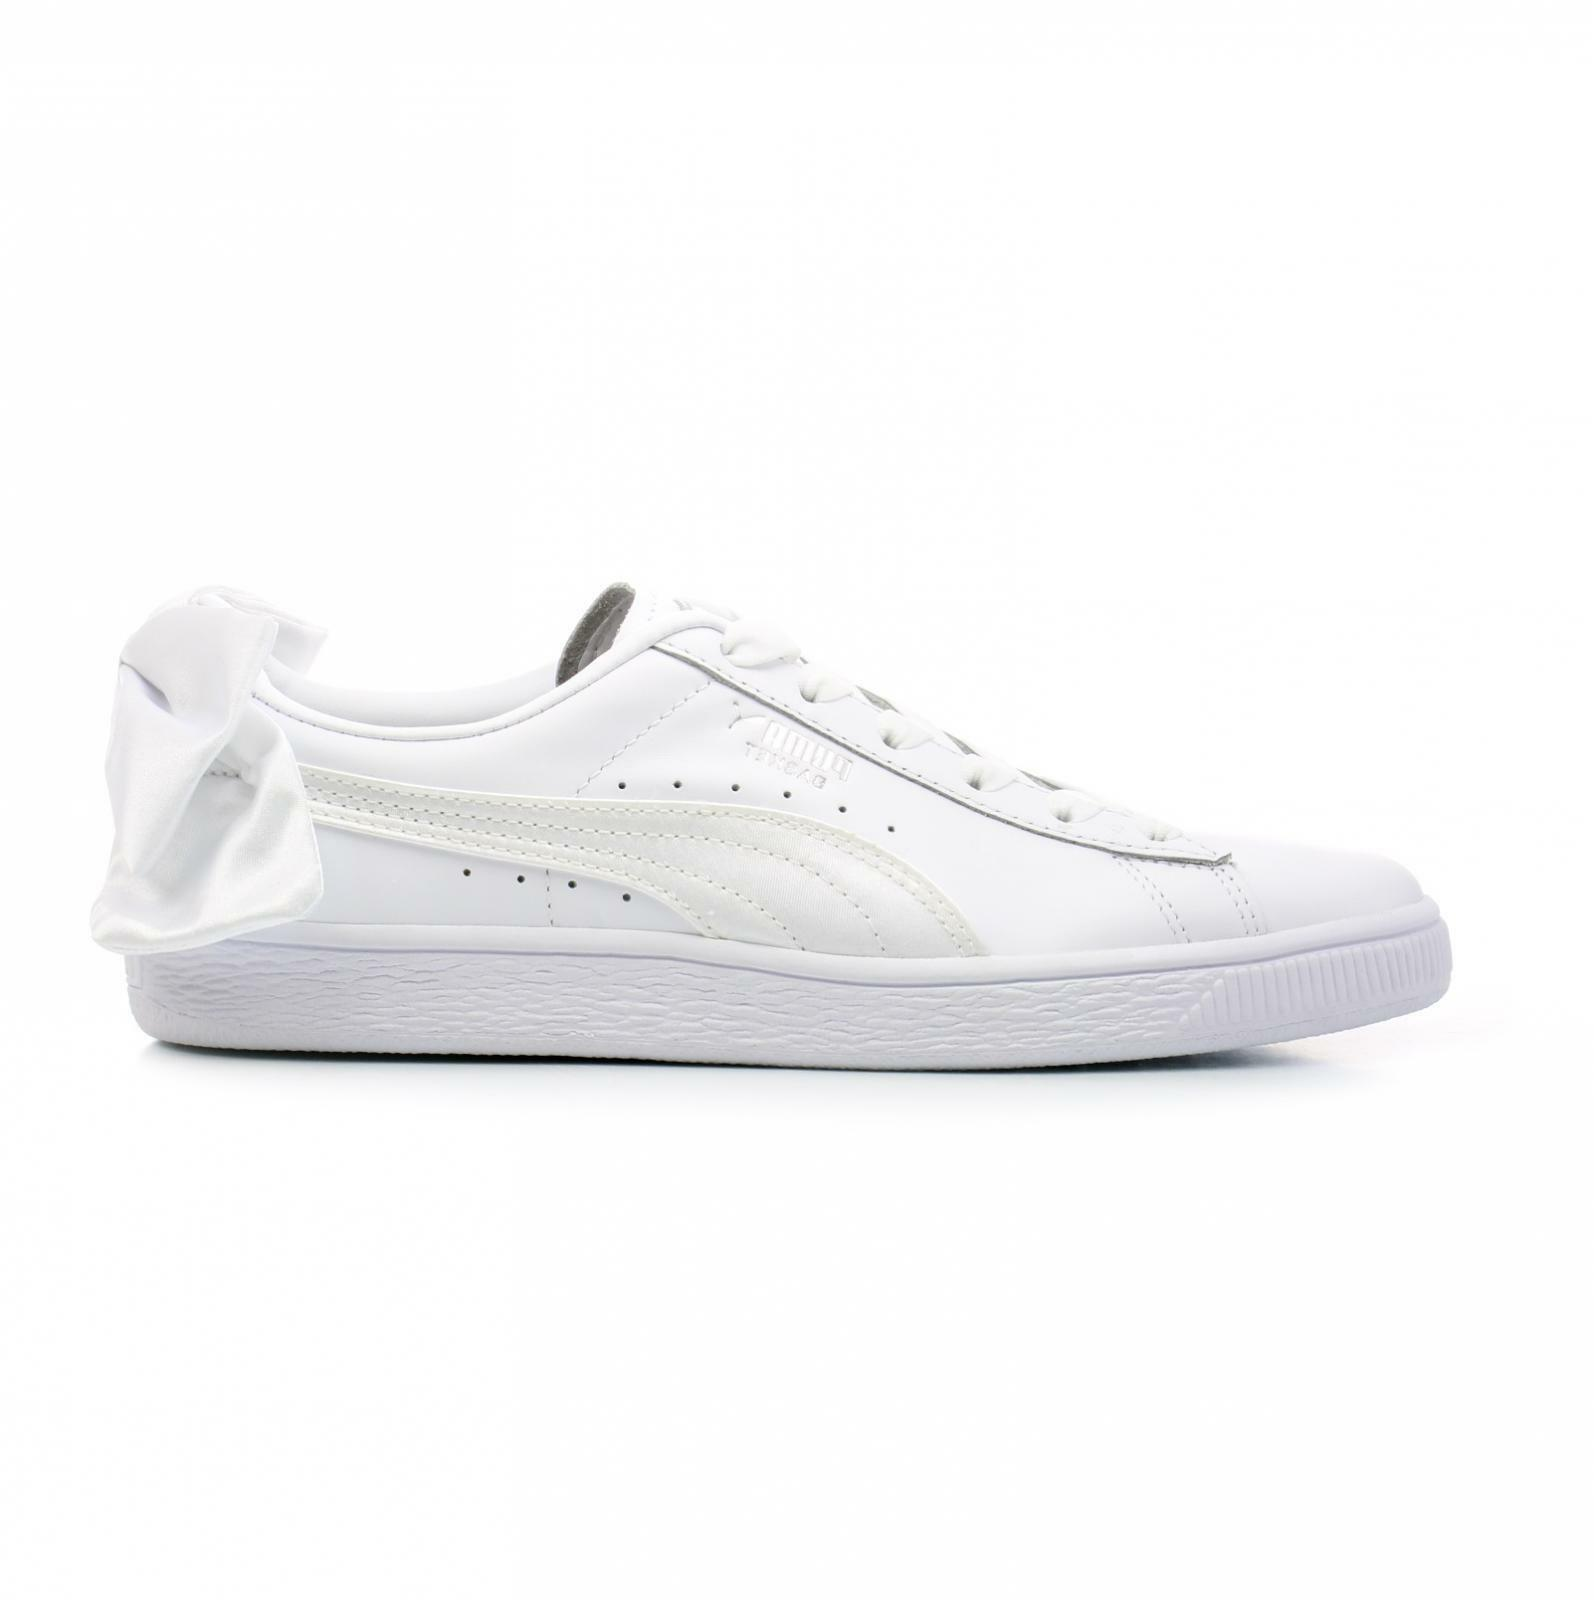 Womens PUMA BASKET BOW White Leather Trainers 367319 01